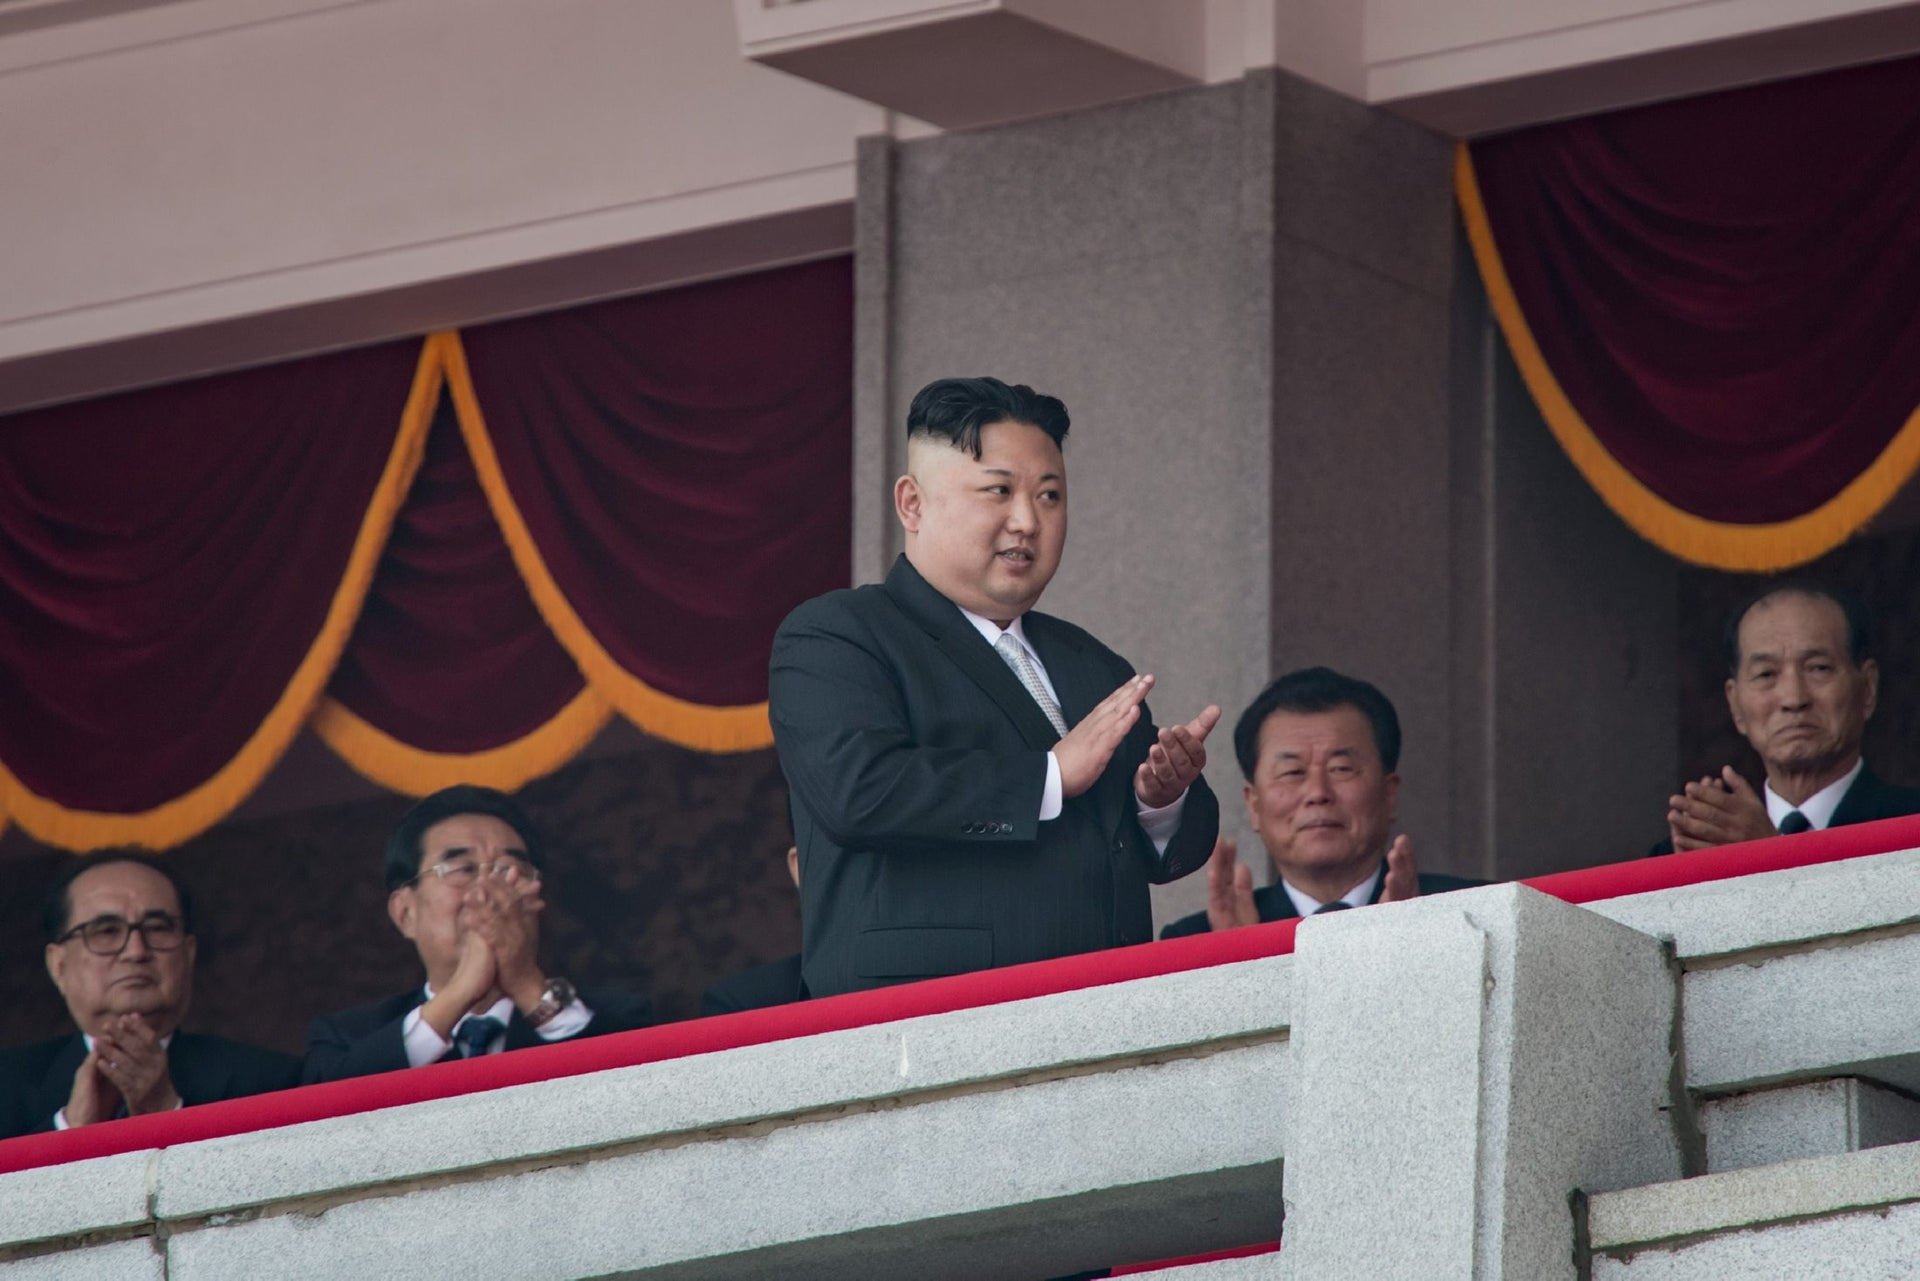 North Korean leader Kim Jong-Un on a balcony of the Grand People's Study house after a military parade in honor of his father Kim Il-Sung, in Pyongyang, April 15, 2017.